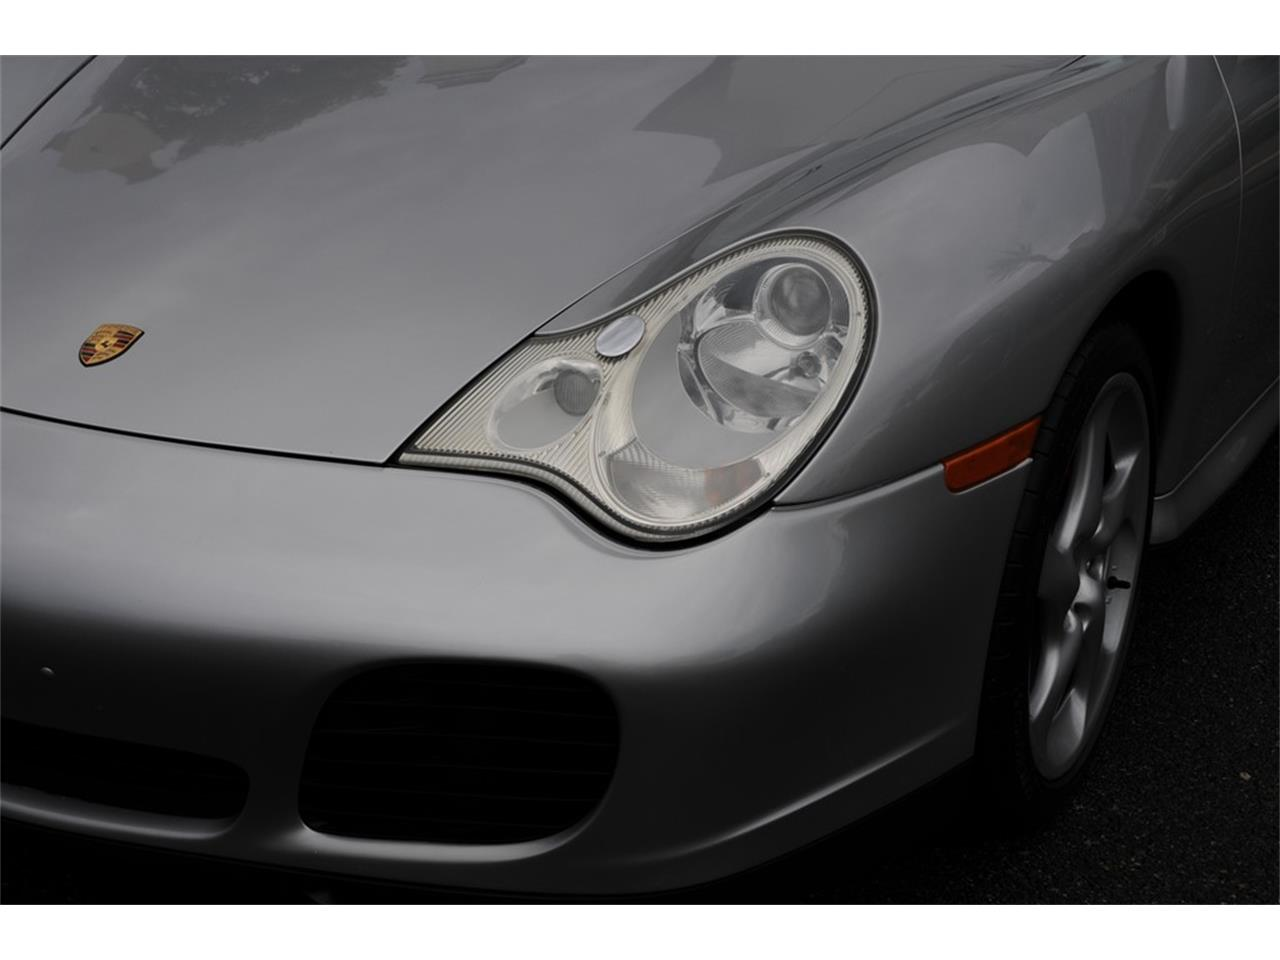 Large Picture of 2004 Porsche 911 Carrera 4S Cabriolet - $32,990.00 Offered by Star European Inc. - QK9K